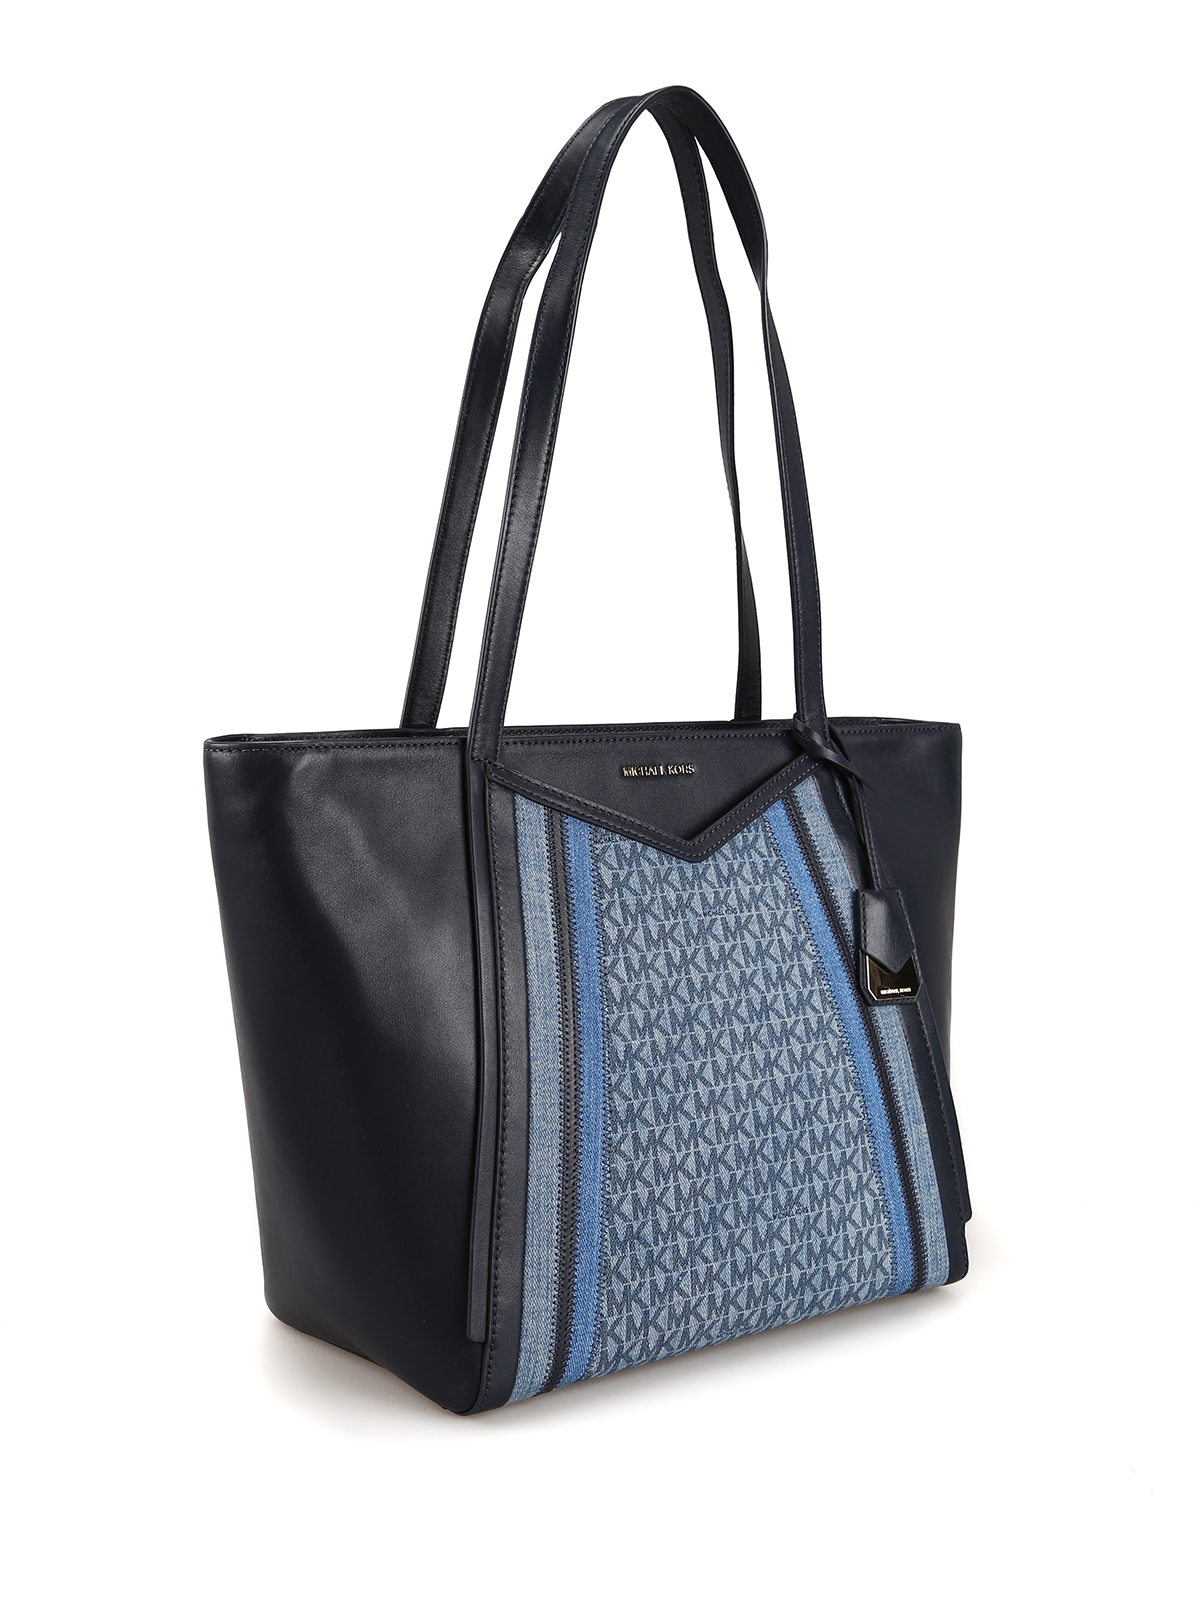 d64a07335b59 MICHAEL KORS: totes bags online - Whitney leather and denim large tote